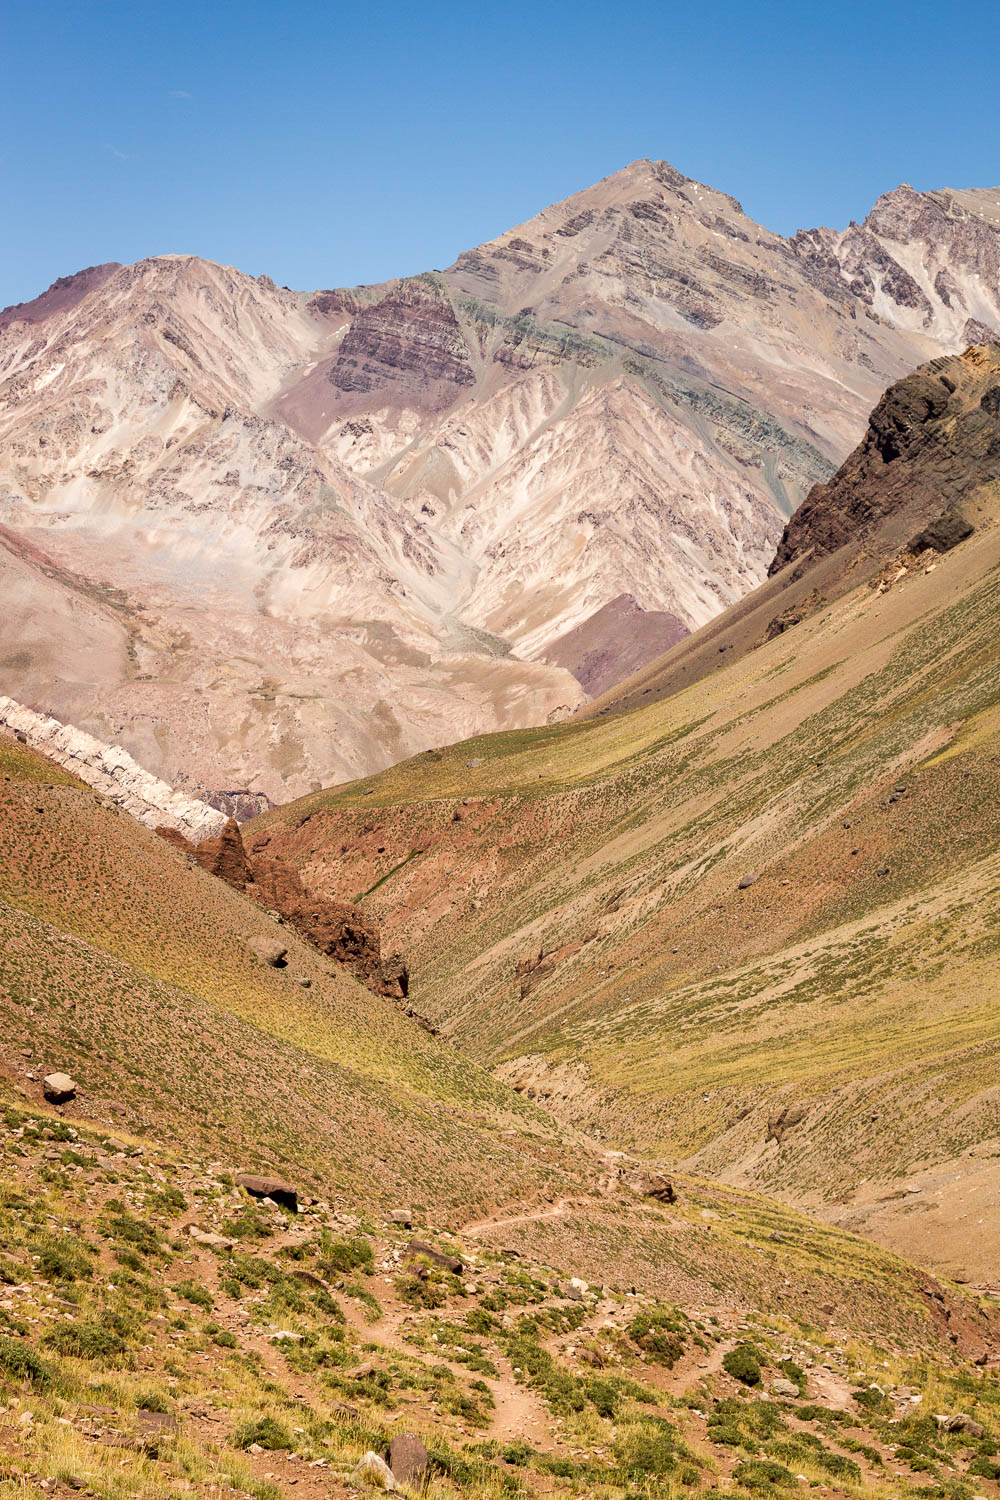 View of the Andes from Aconcagua base camp